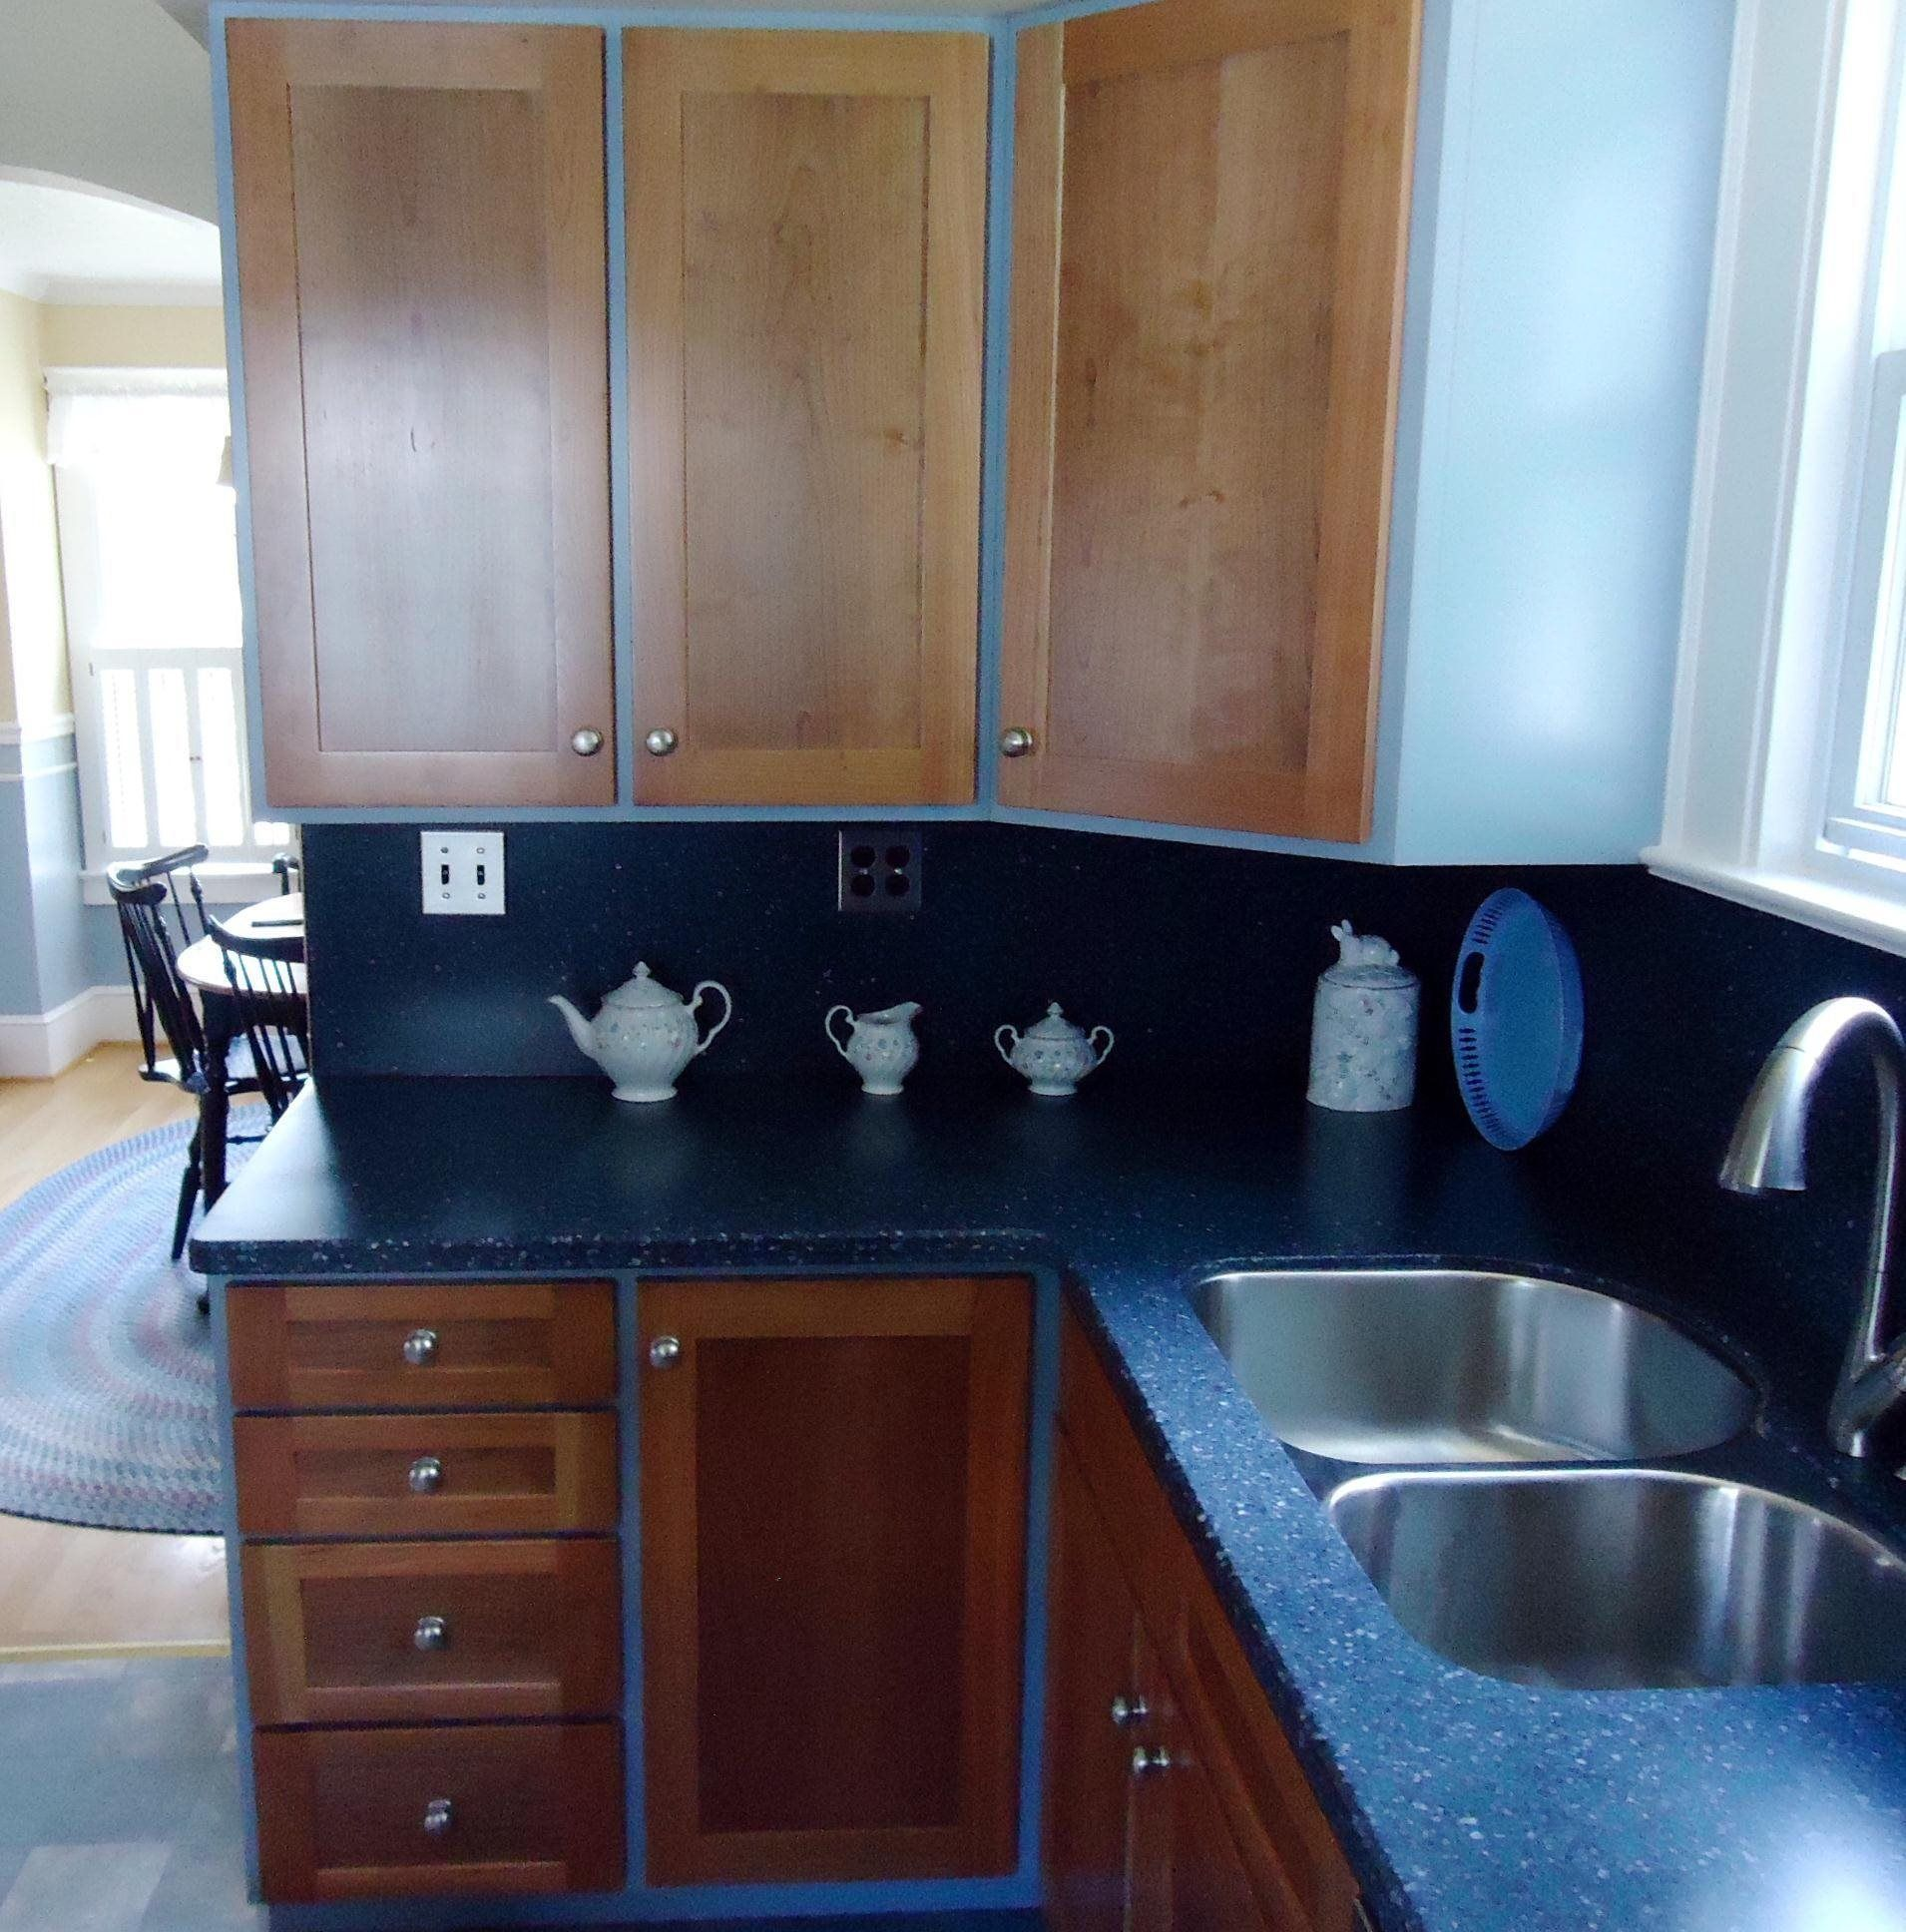 Solid Surface Kitchen Cabinet: Robert Kane Custom Woodworking: Blue Cabinets